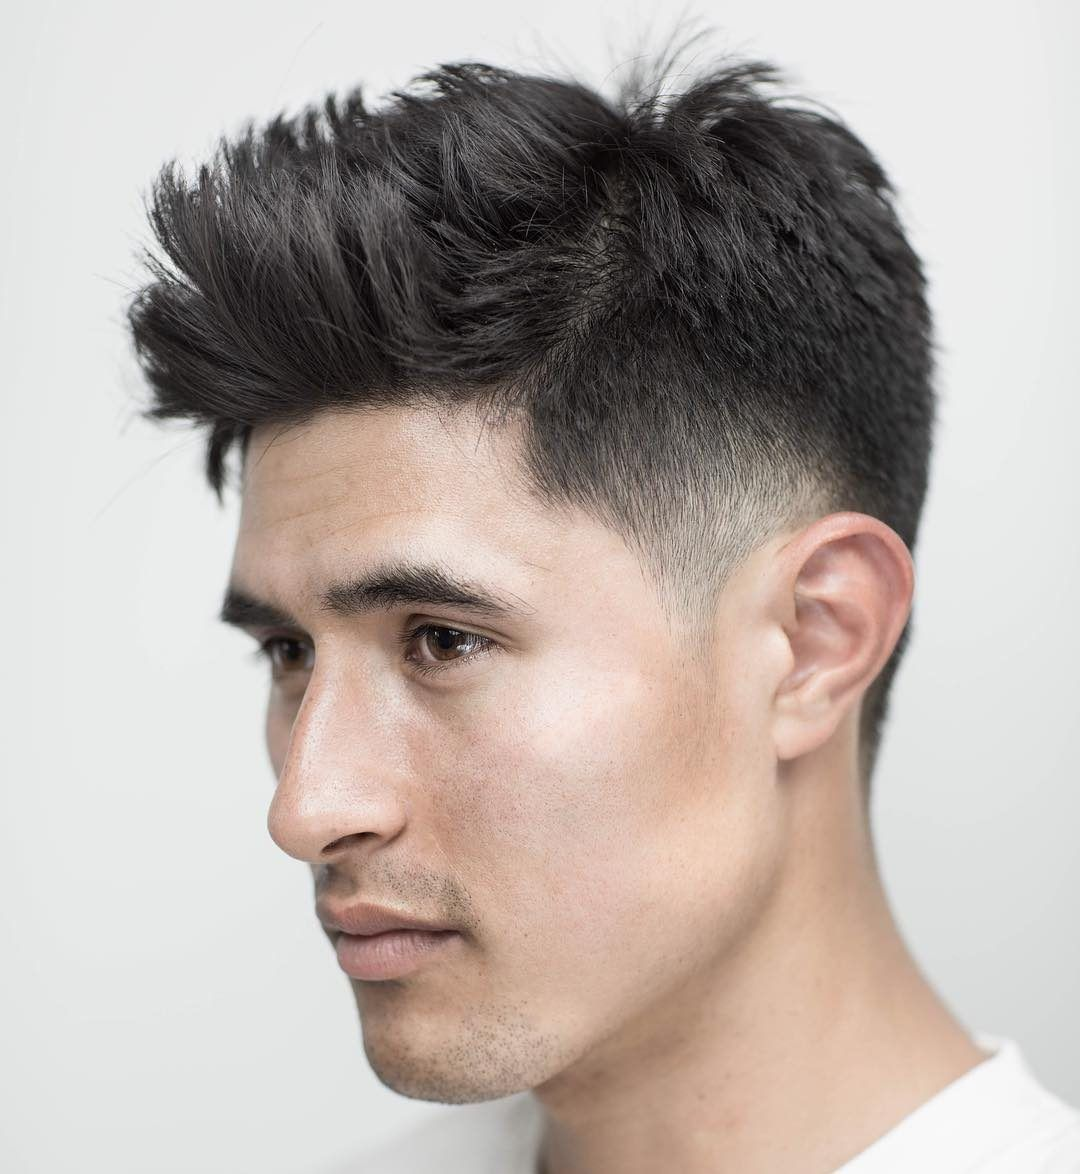 45 cool men's hairstyles to get right now (updated) | my style of